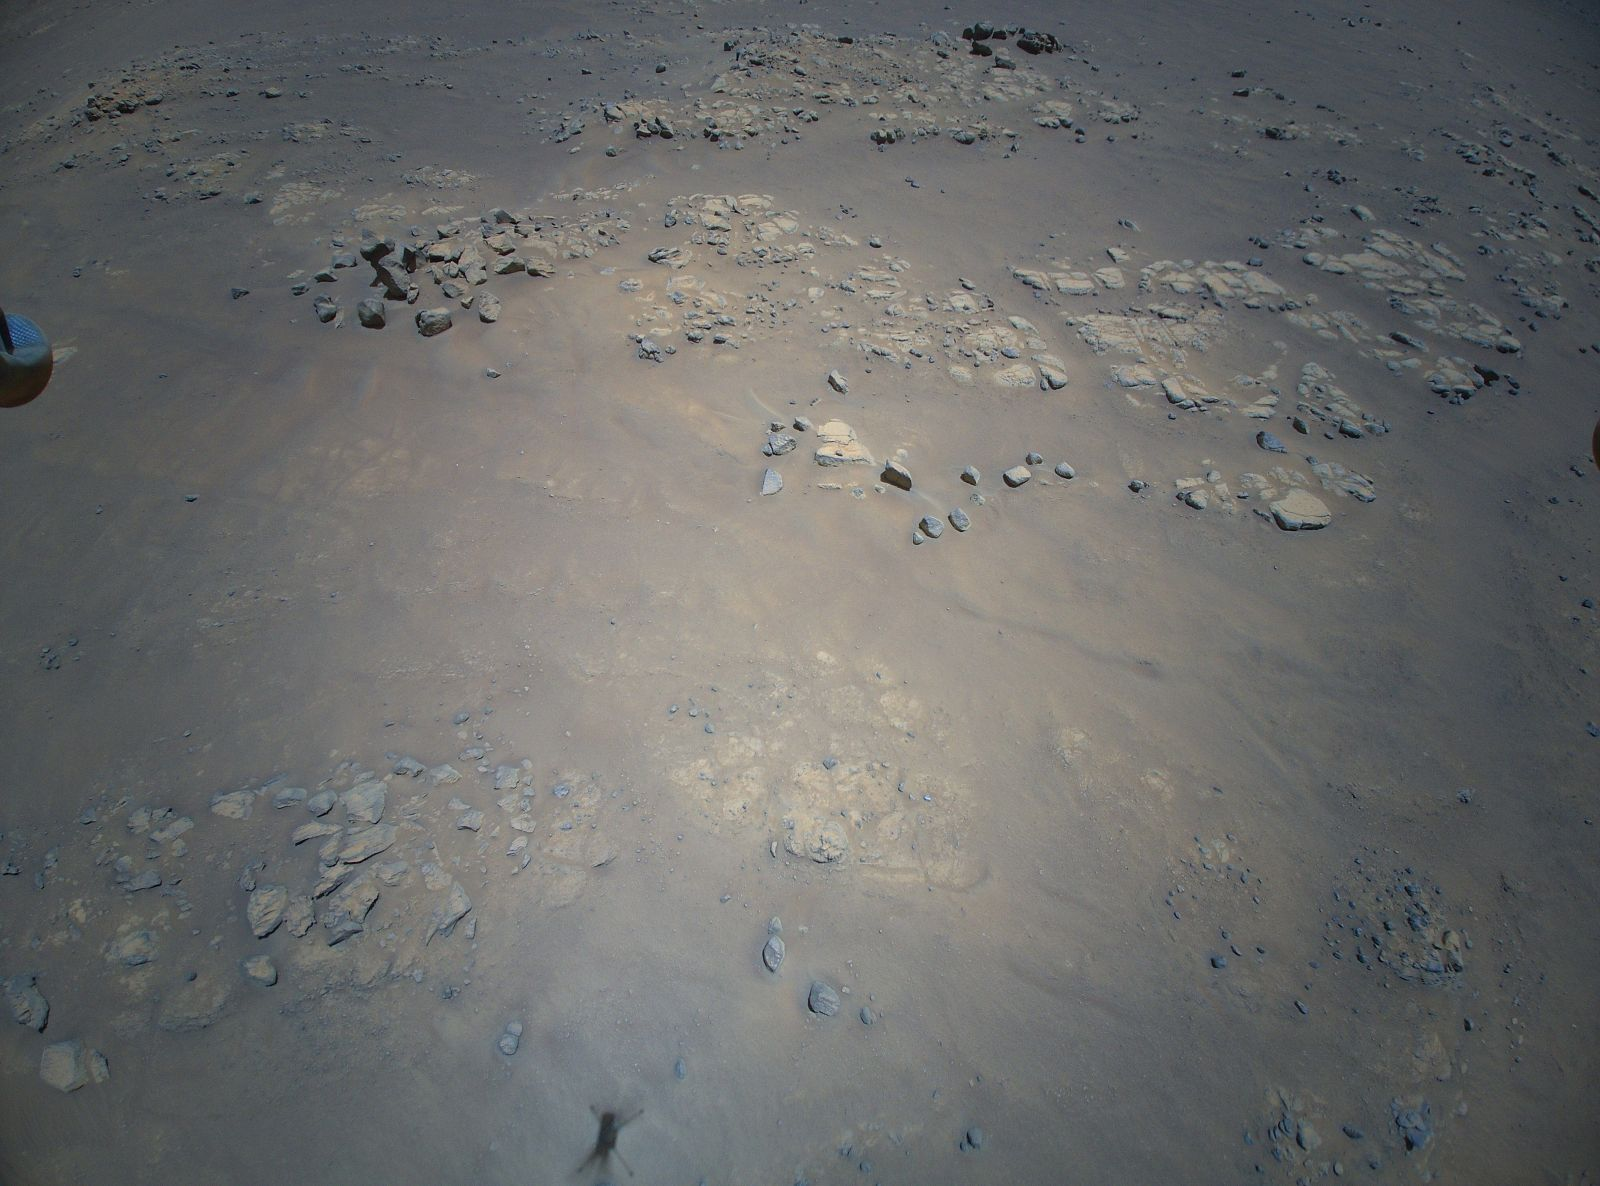 Some of the rough terrain imaged by Ingenuity during its ninth flight. Credit: NASA / JPL-Caltech